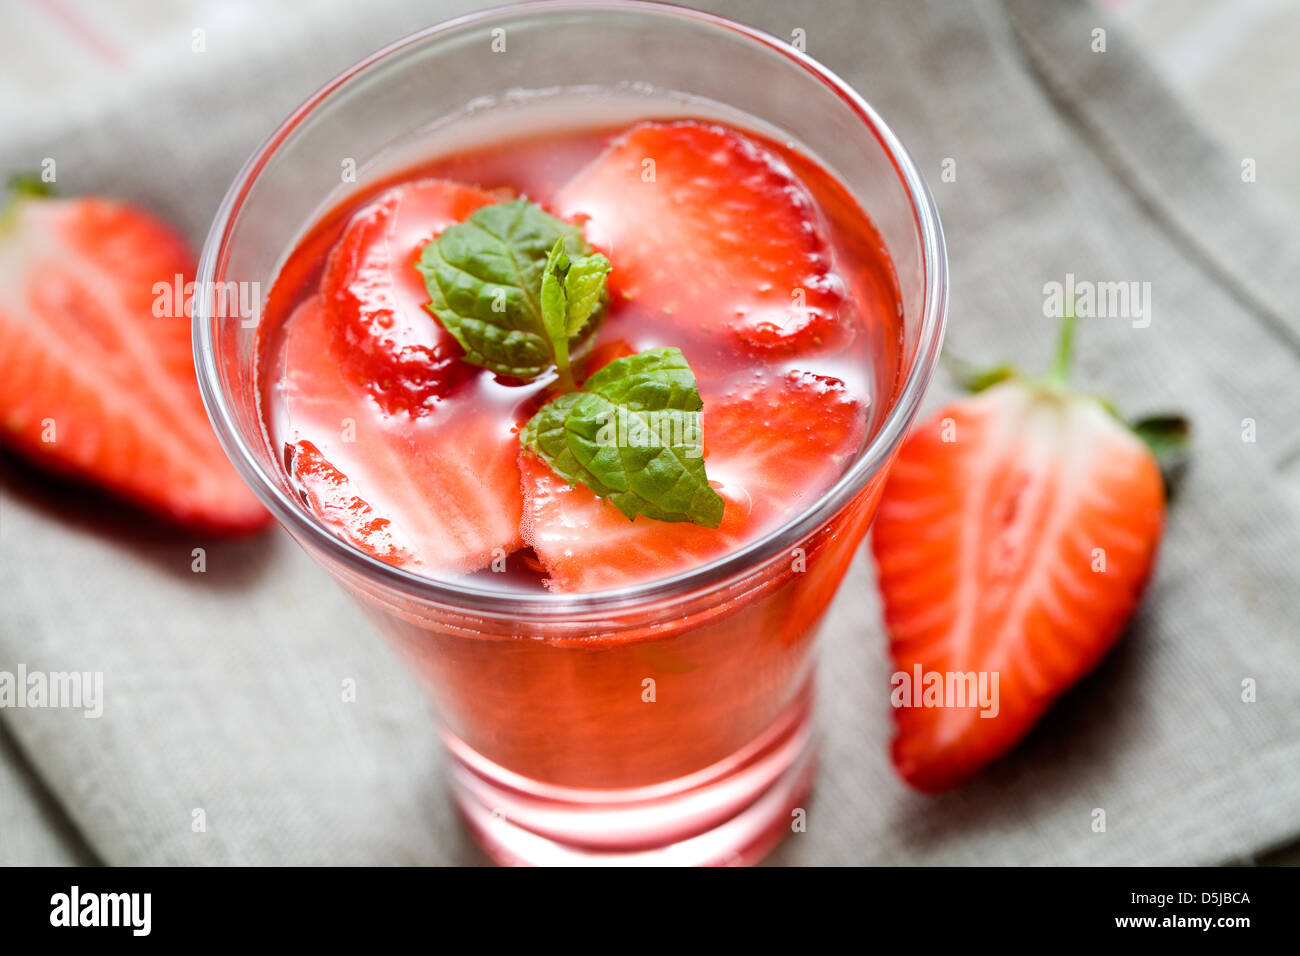 Cold strawberry drink with strawberry slices and mint - Stock Image